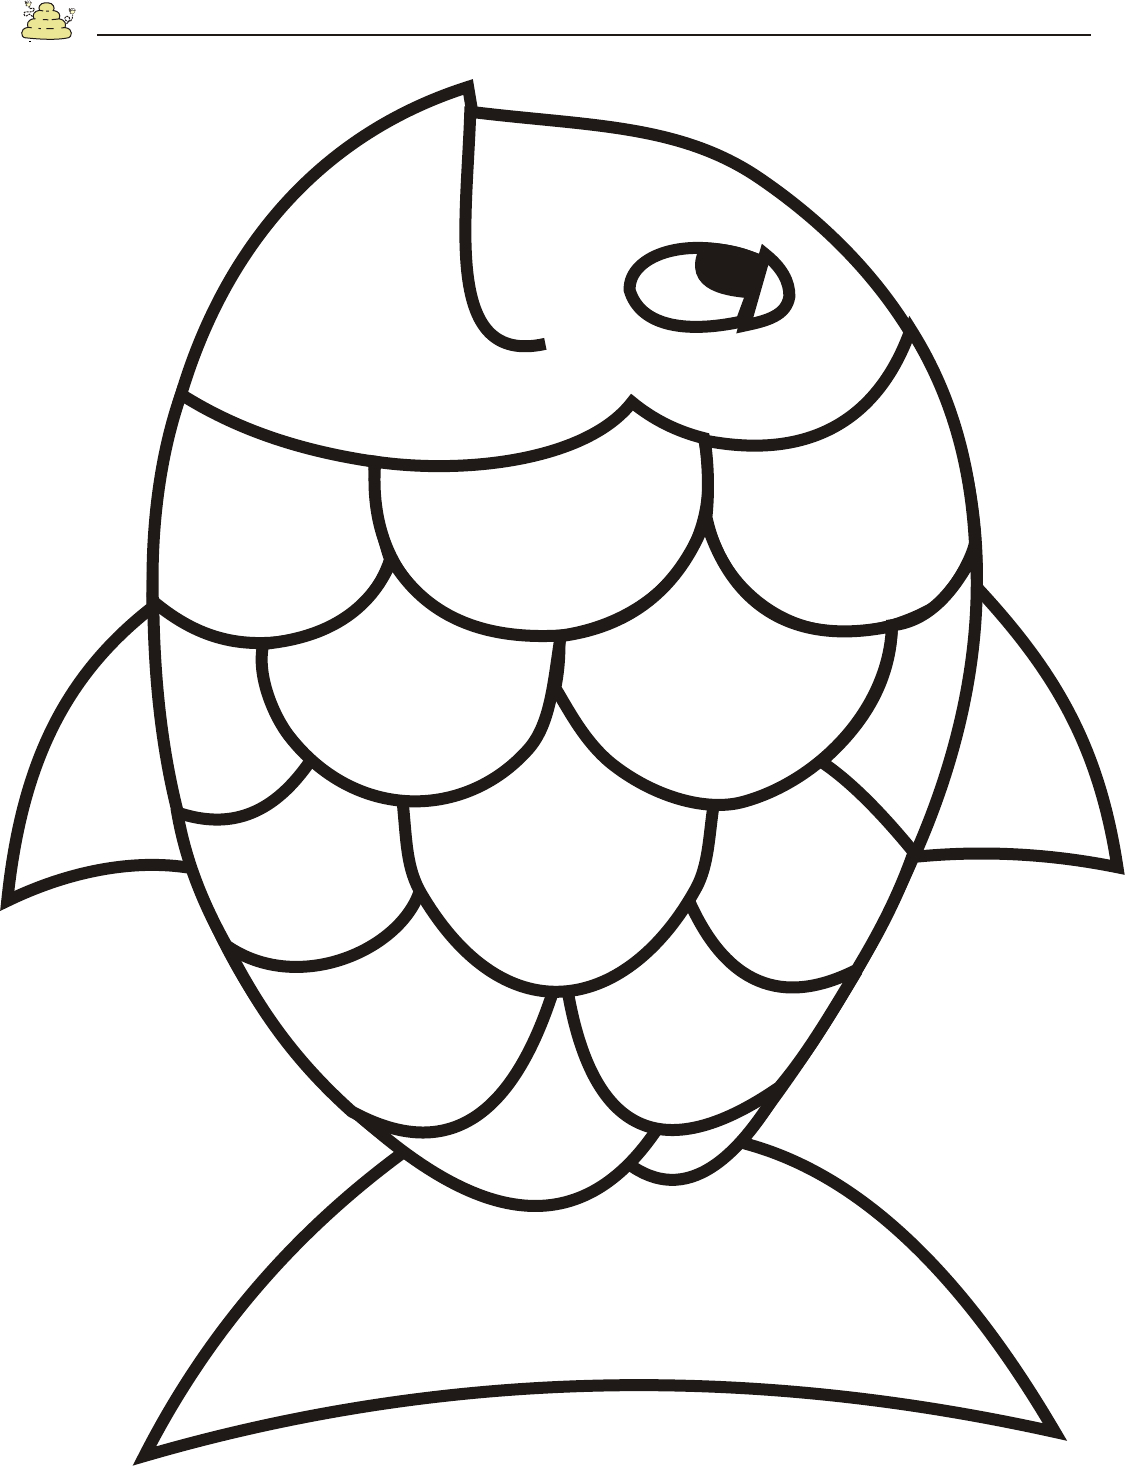 Free Rainbow Fish Template - Pdf   2 Page(S)   Page 2   Vbs - Free Printable Sea Creature Templates